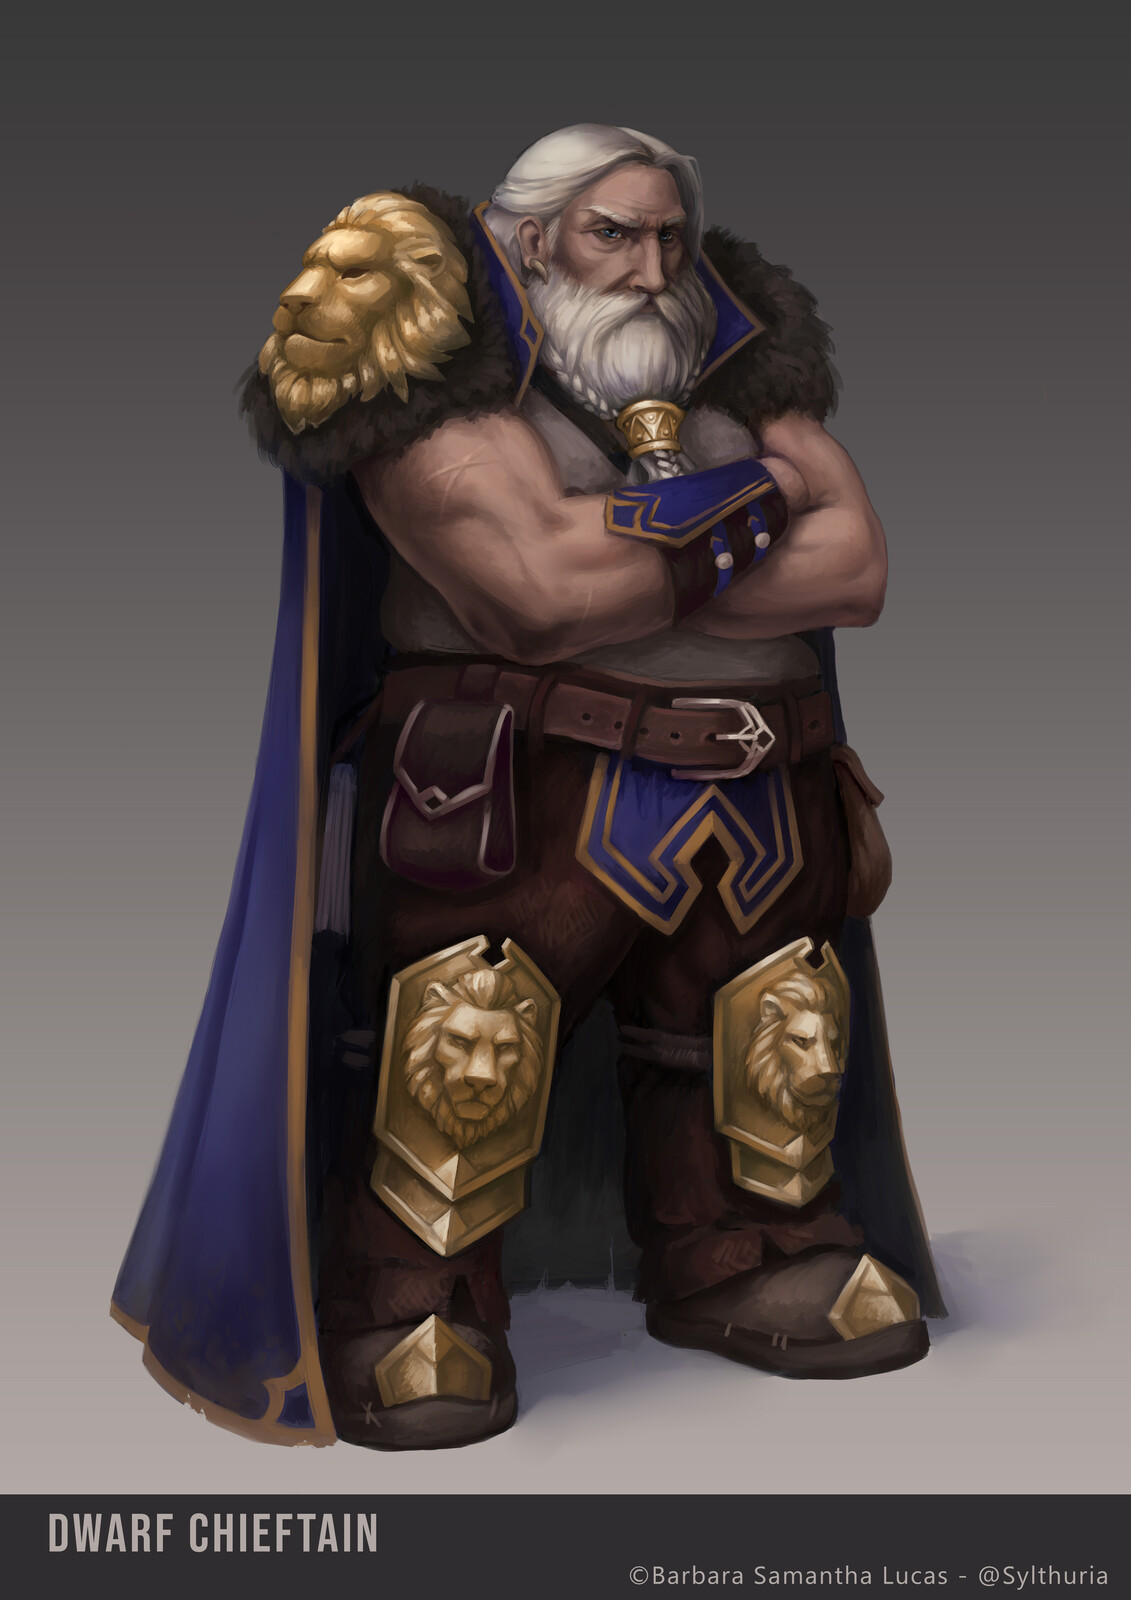 Dwarf Chieftain - Character Design